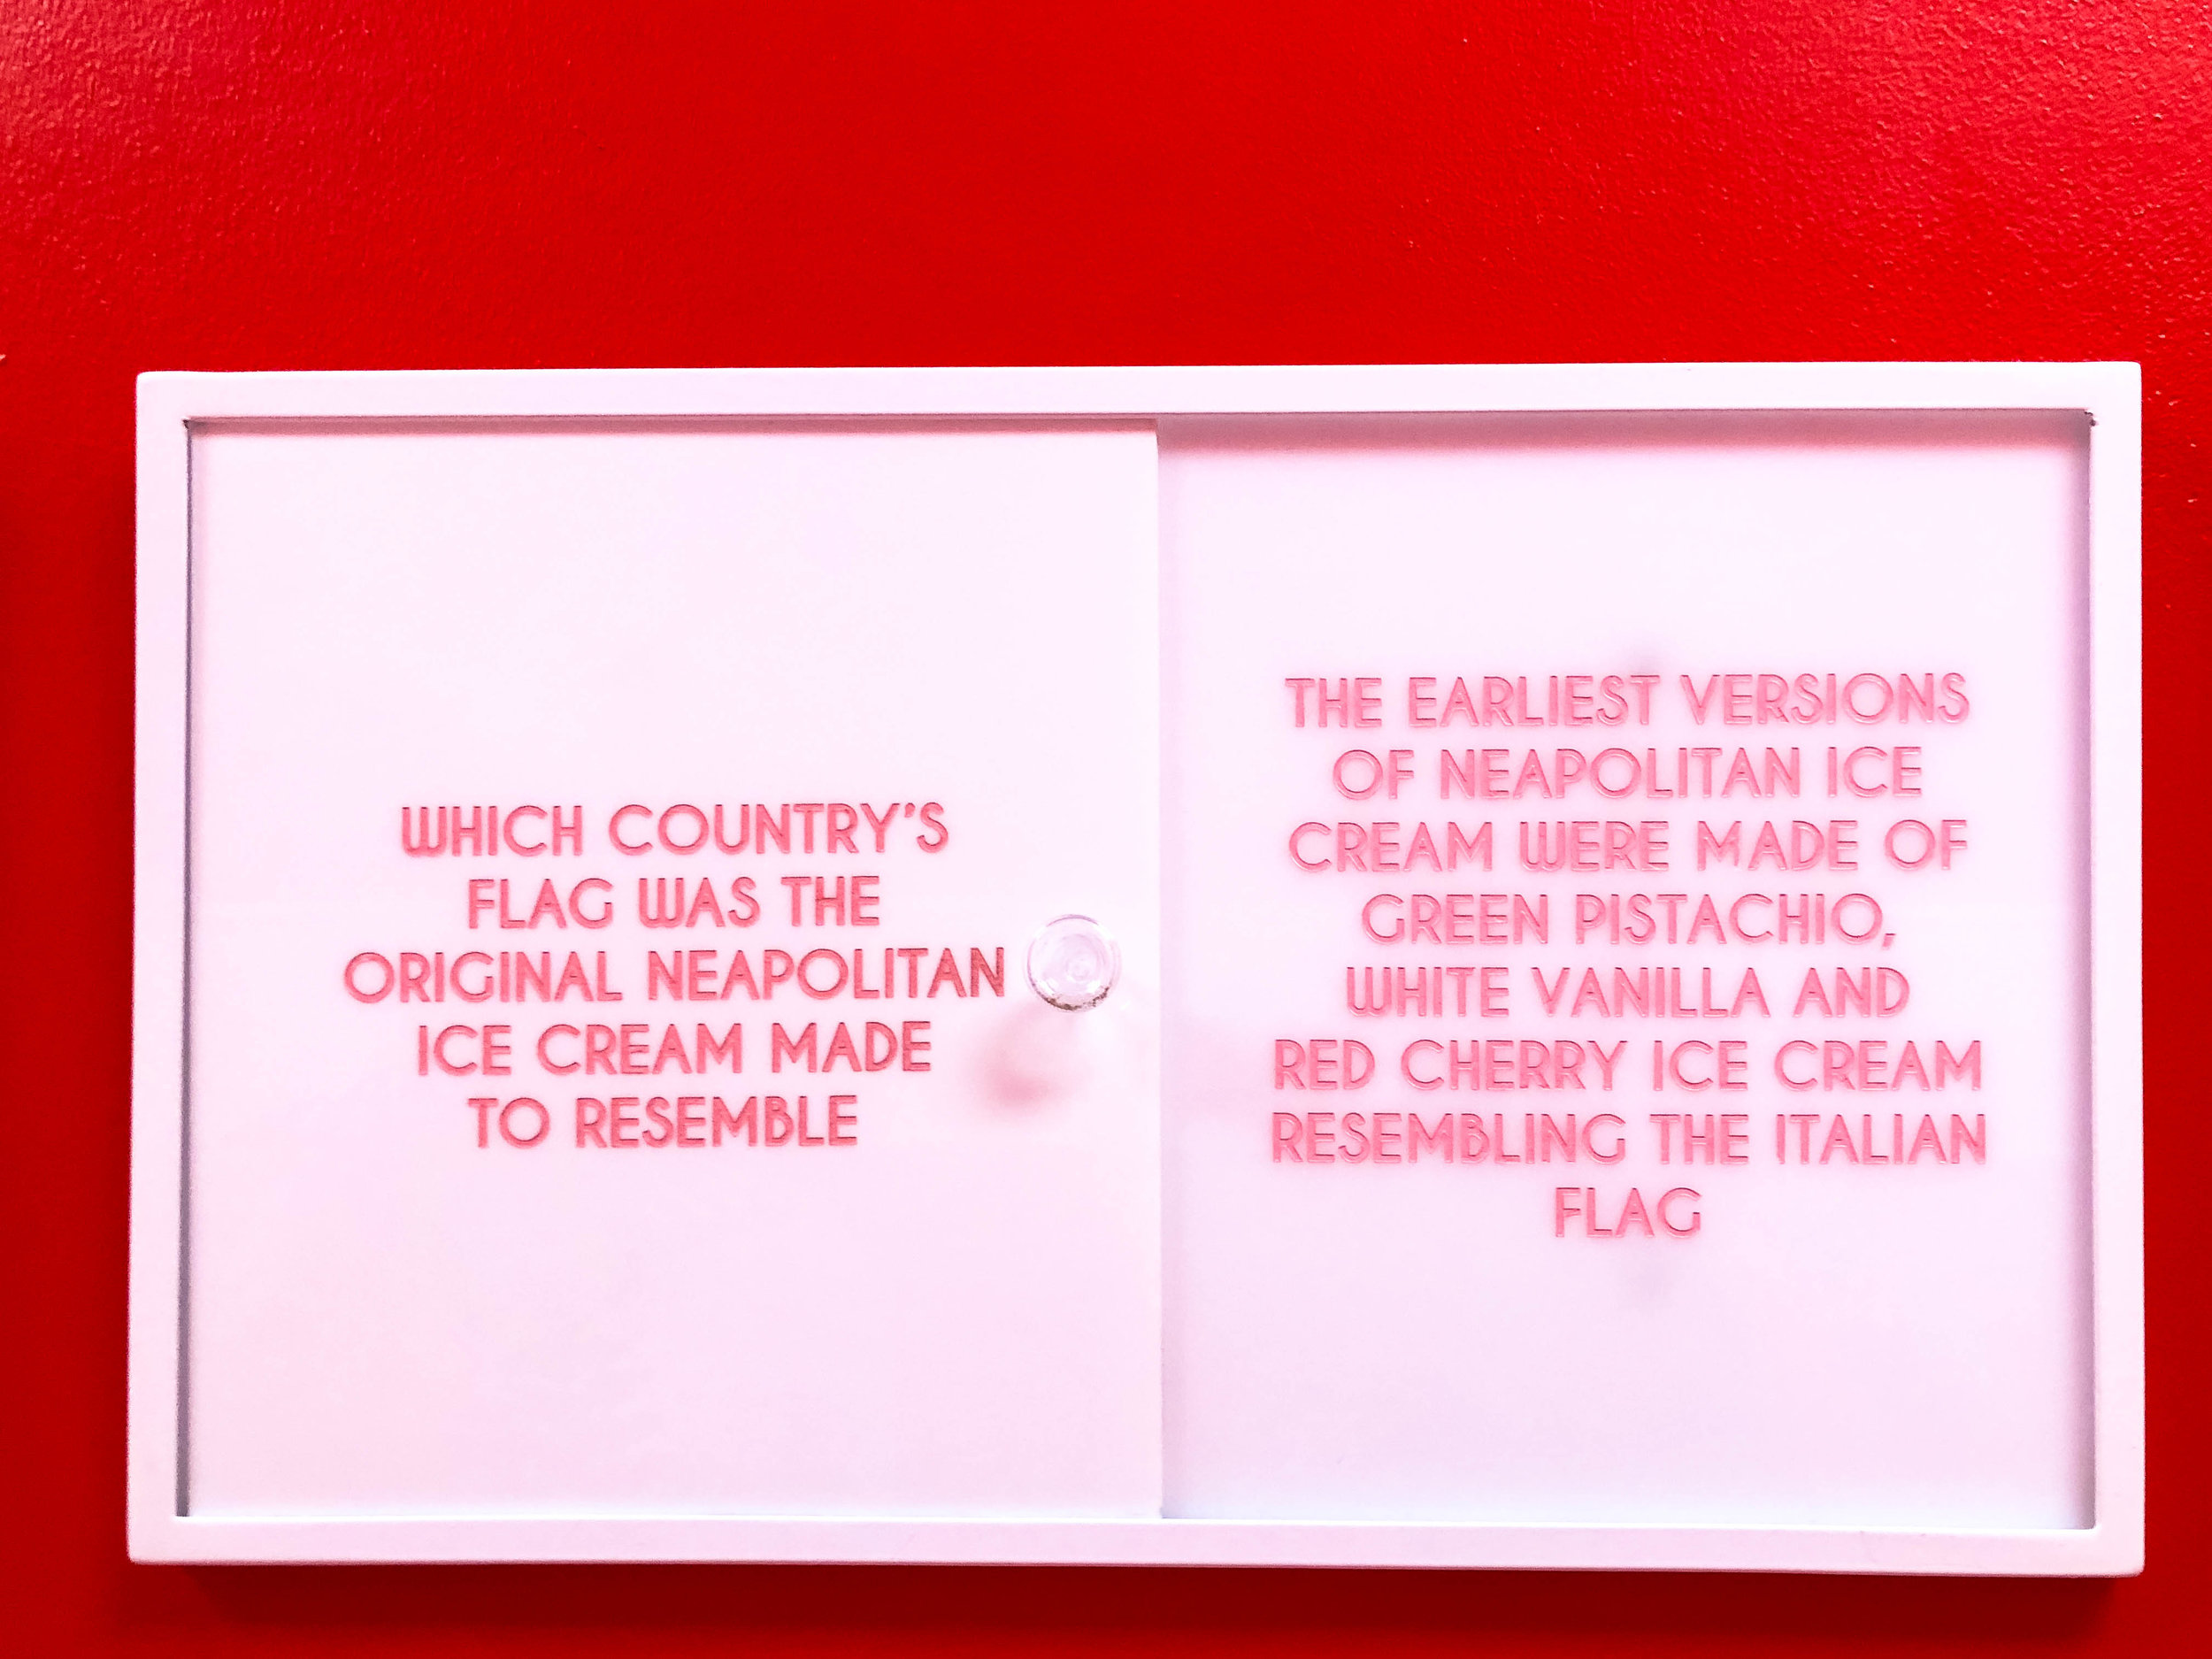 Museum of Ice Cream Trivia